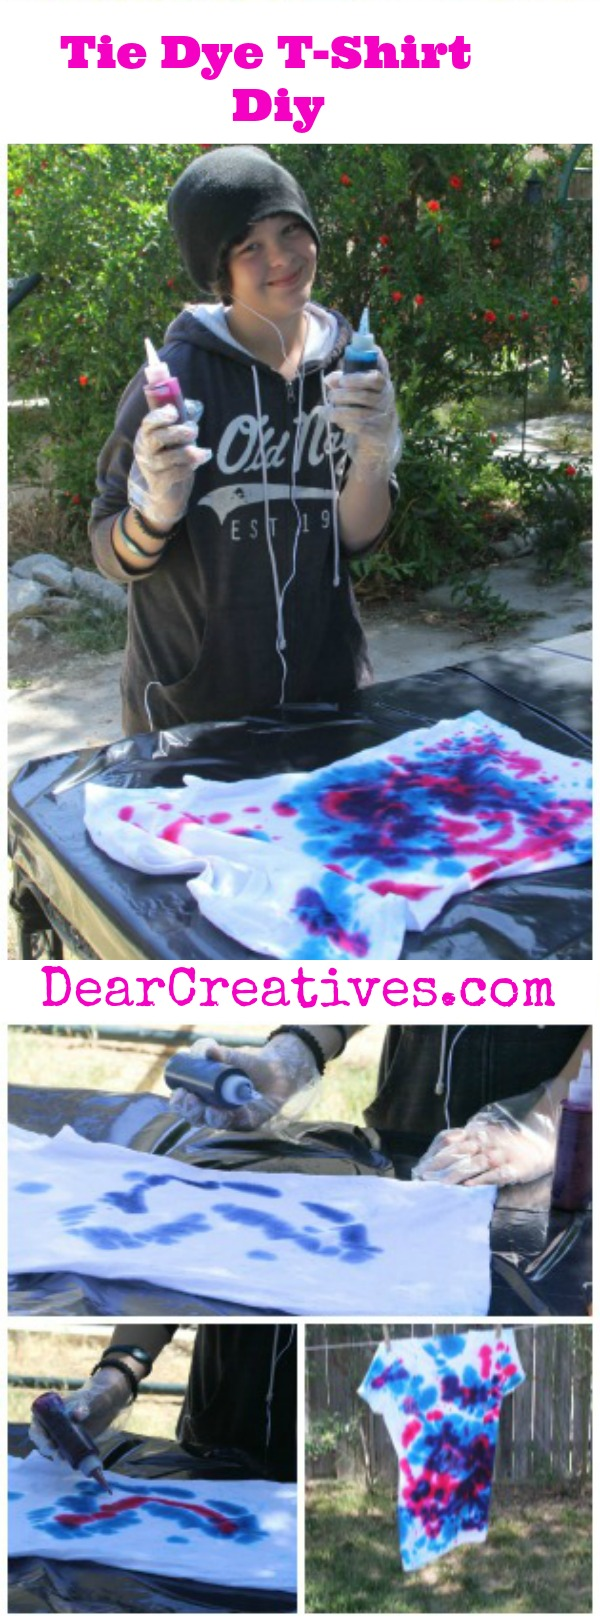 Diy, Sammie (Girl Tie Dying) Tie Dye T-Shirt Project © 2013 Theresa Huse DearCreatives.com